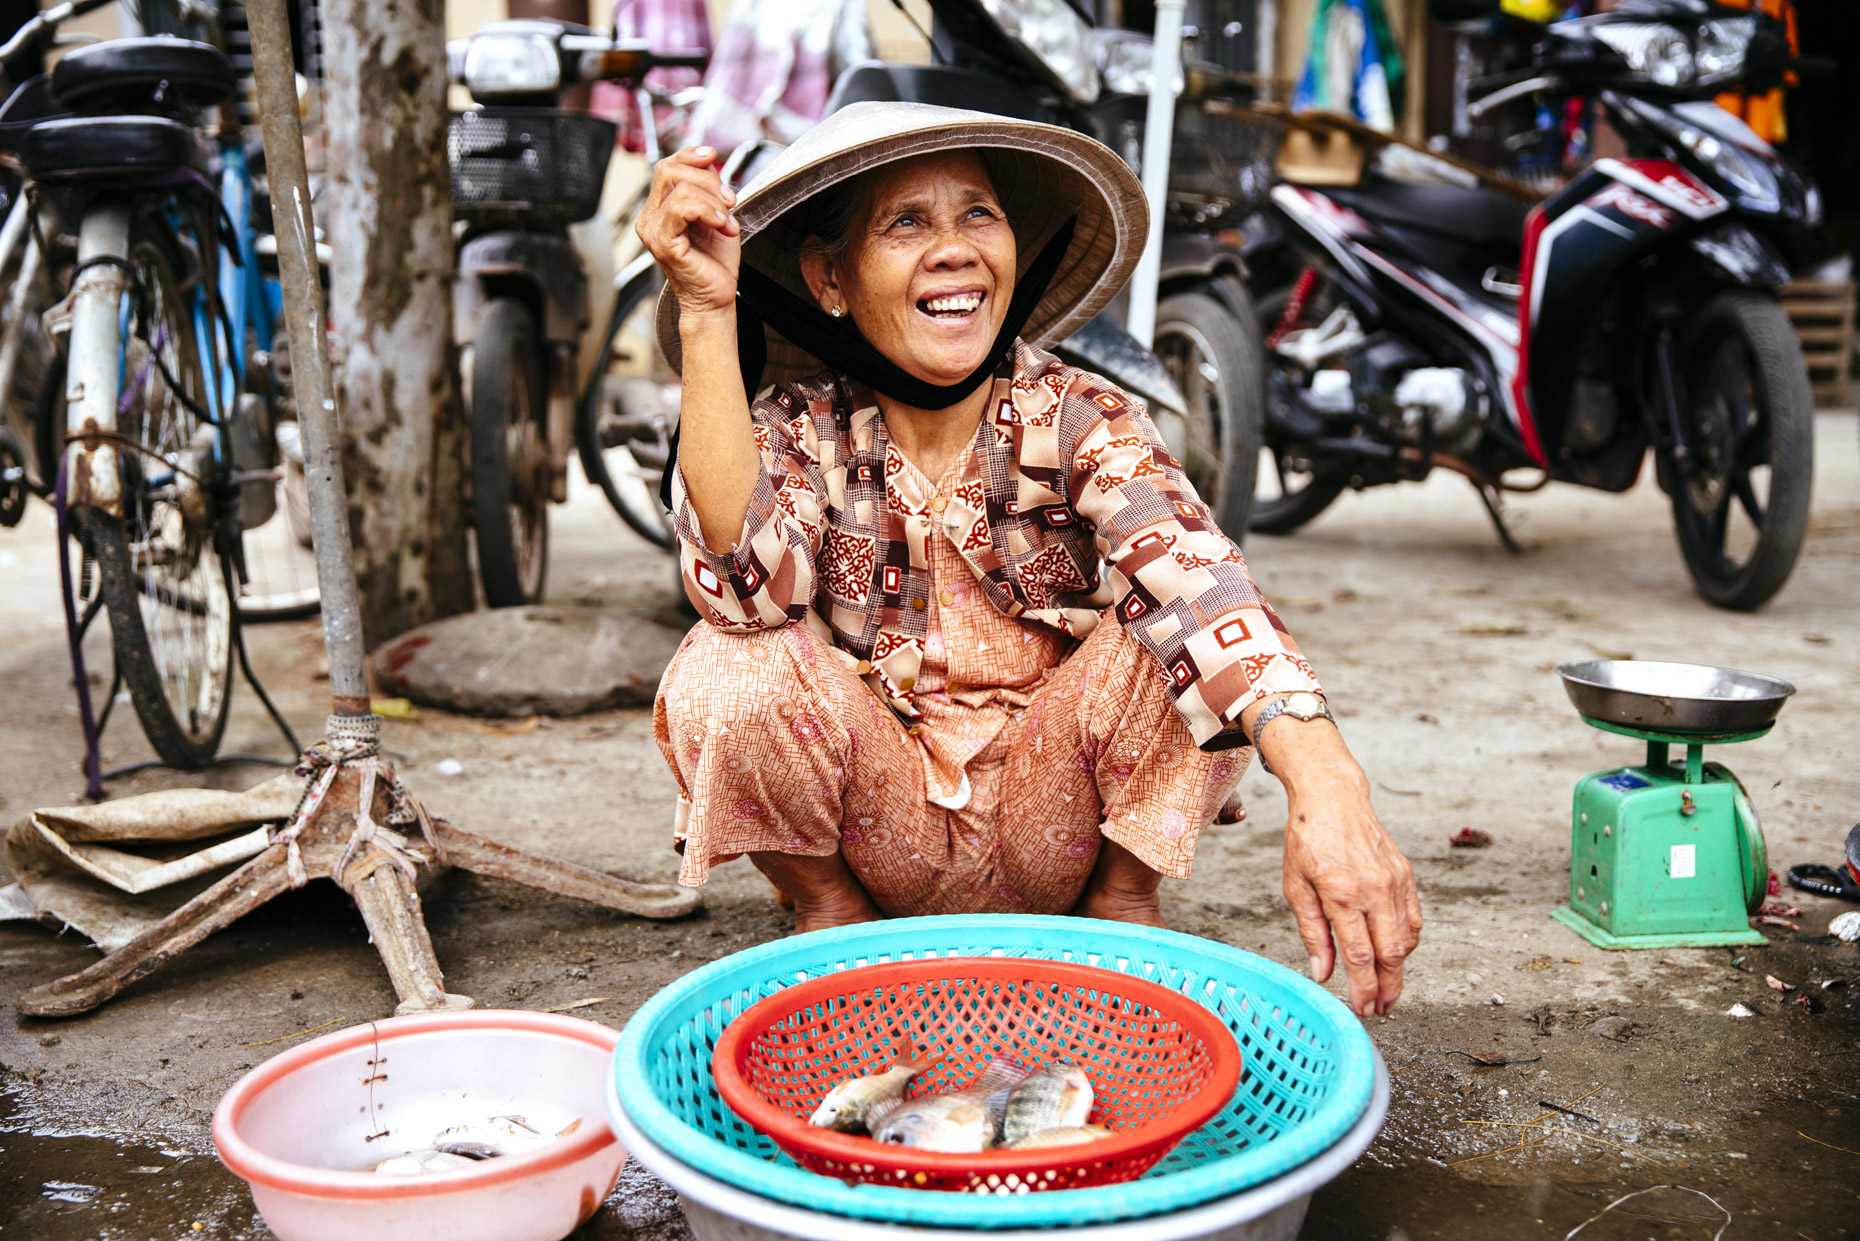 Inti St Clair photo of smiling woman selling fish on sidewalk in Hoi An Vietnam